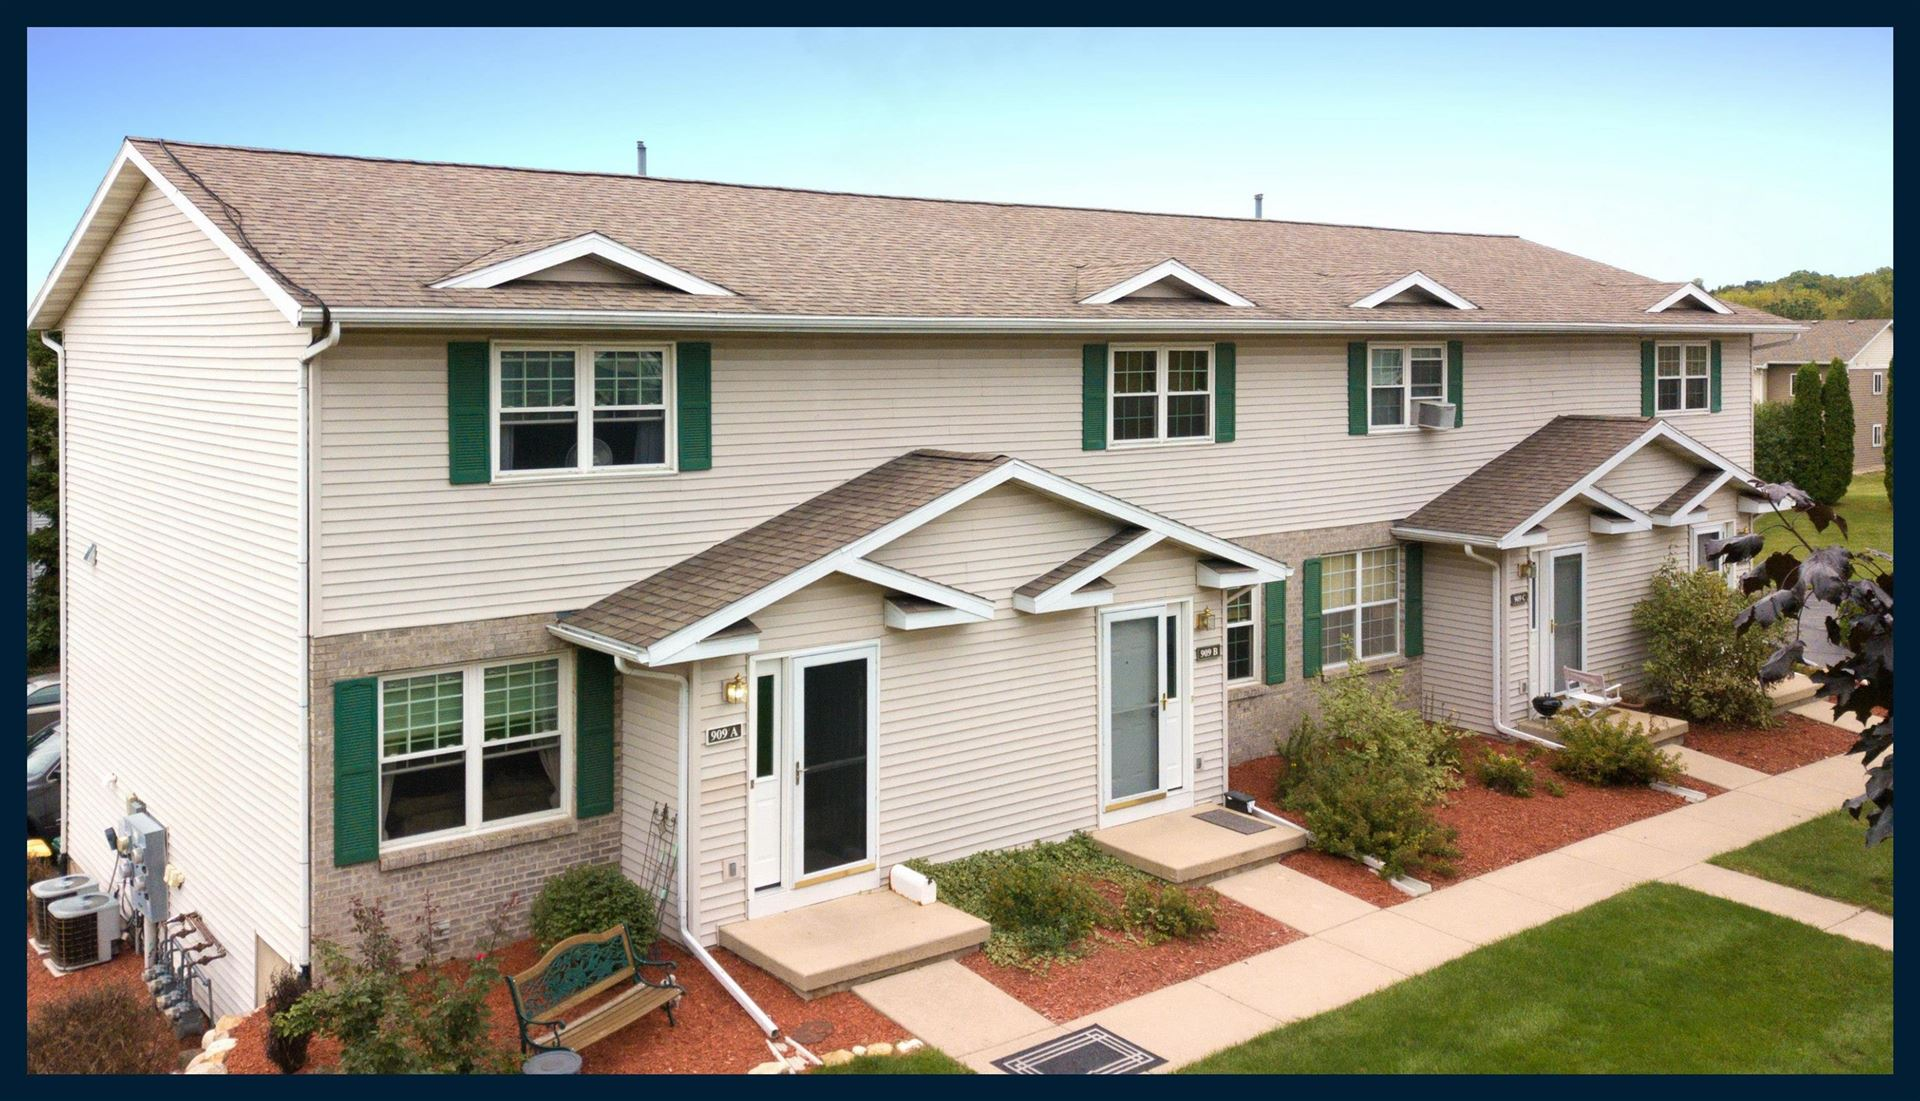 909A N Clover Ln, Cottage Grove, WI 53527-9454 - #: 1919922